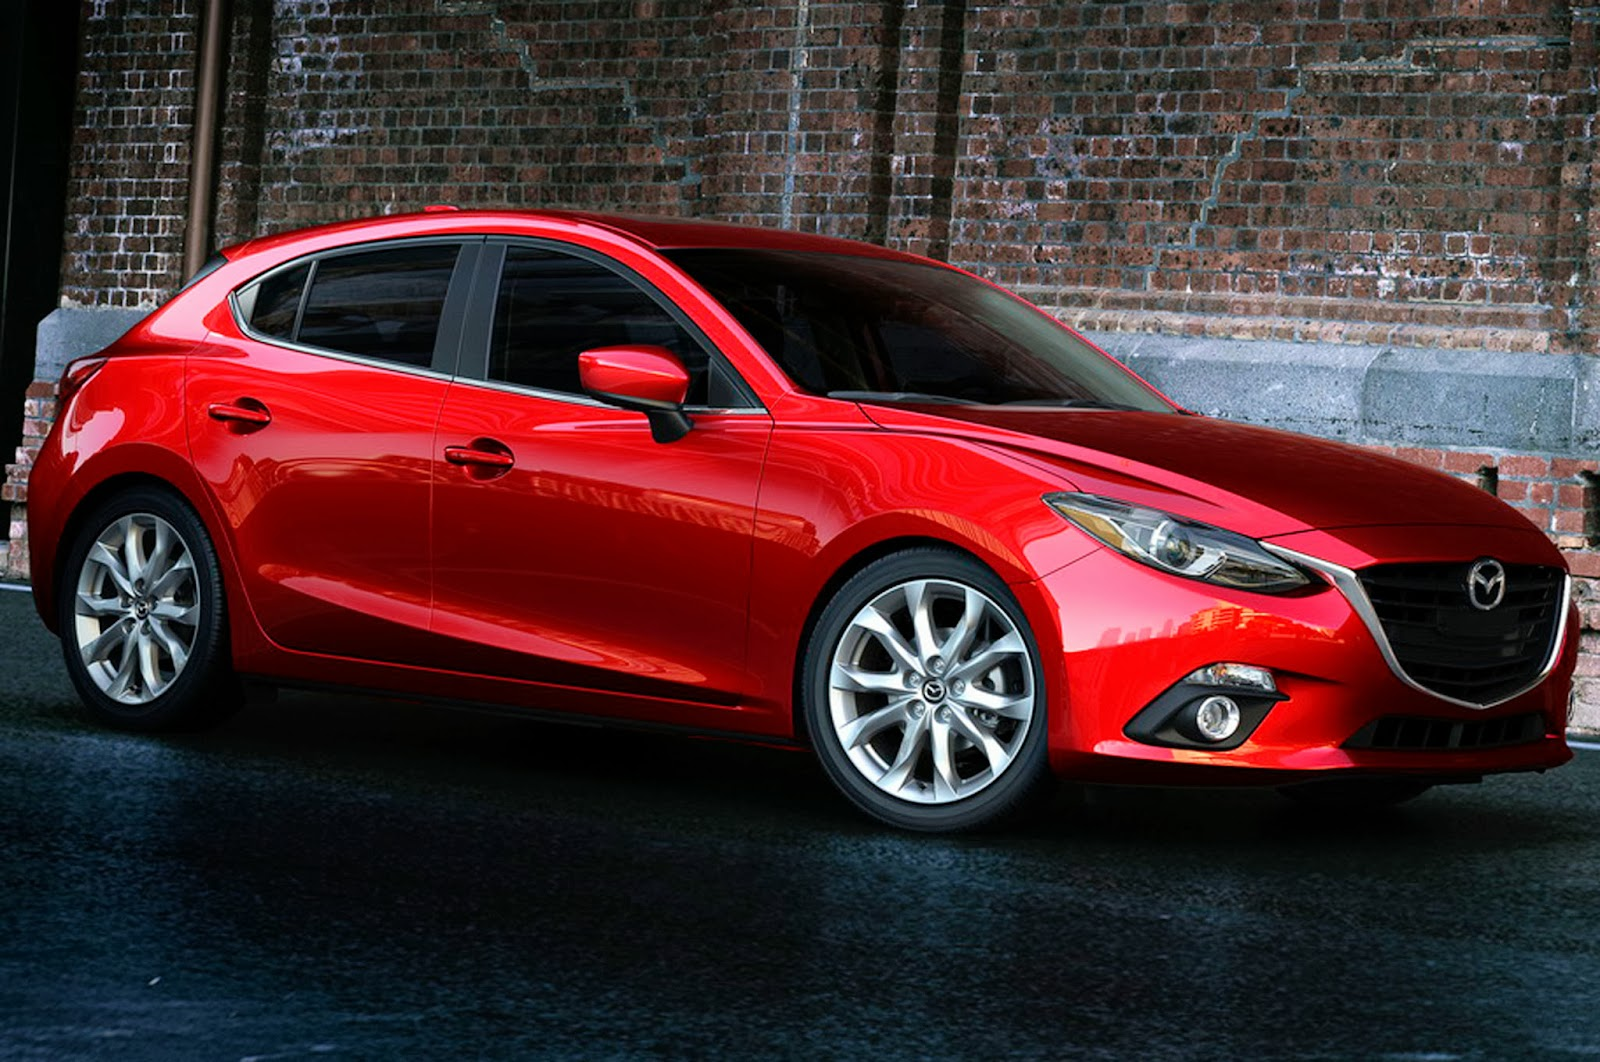 2014 mazda mazda3 the game changer all new fuel efficient compact car thelen mazda blog. Black Bedroom Furniture Sets. Home Design Ideas